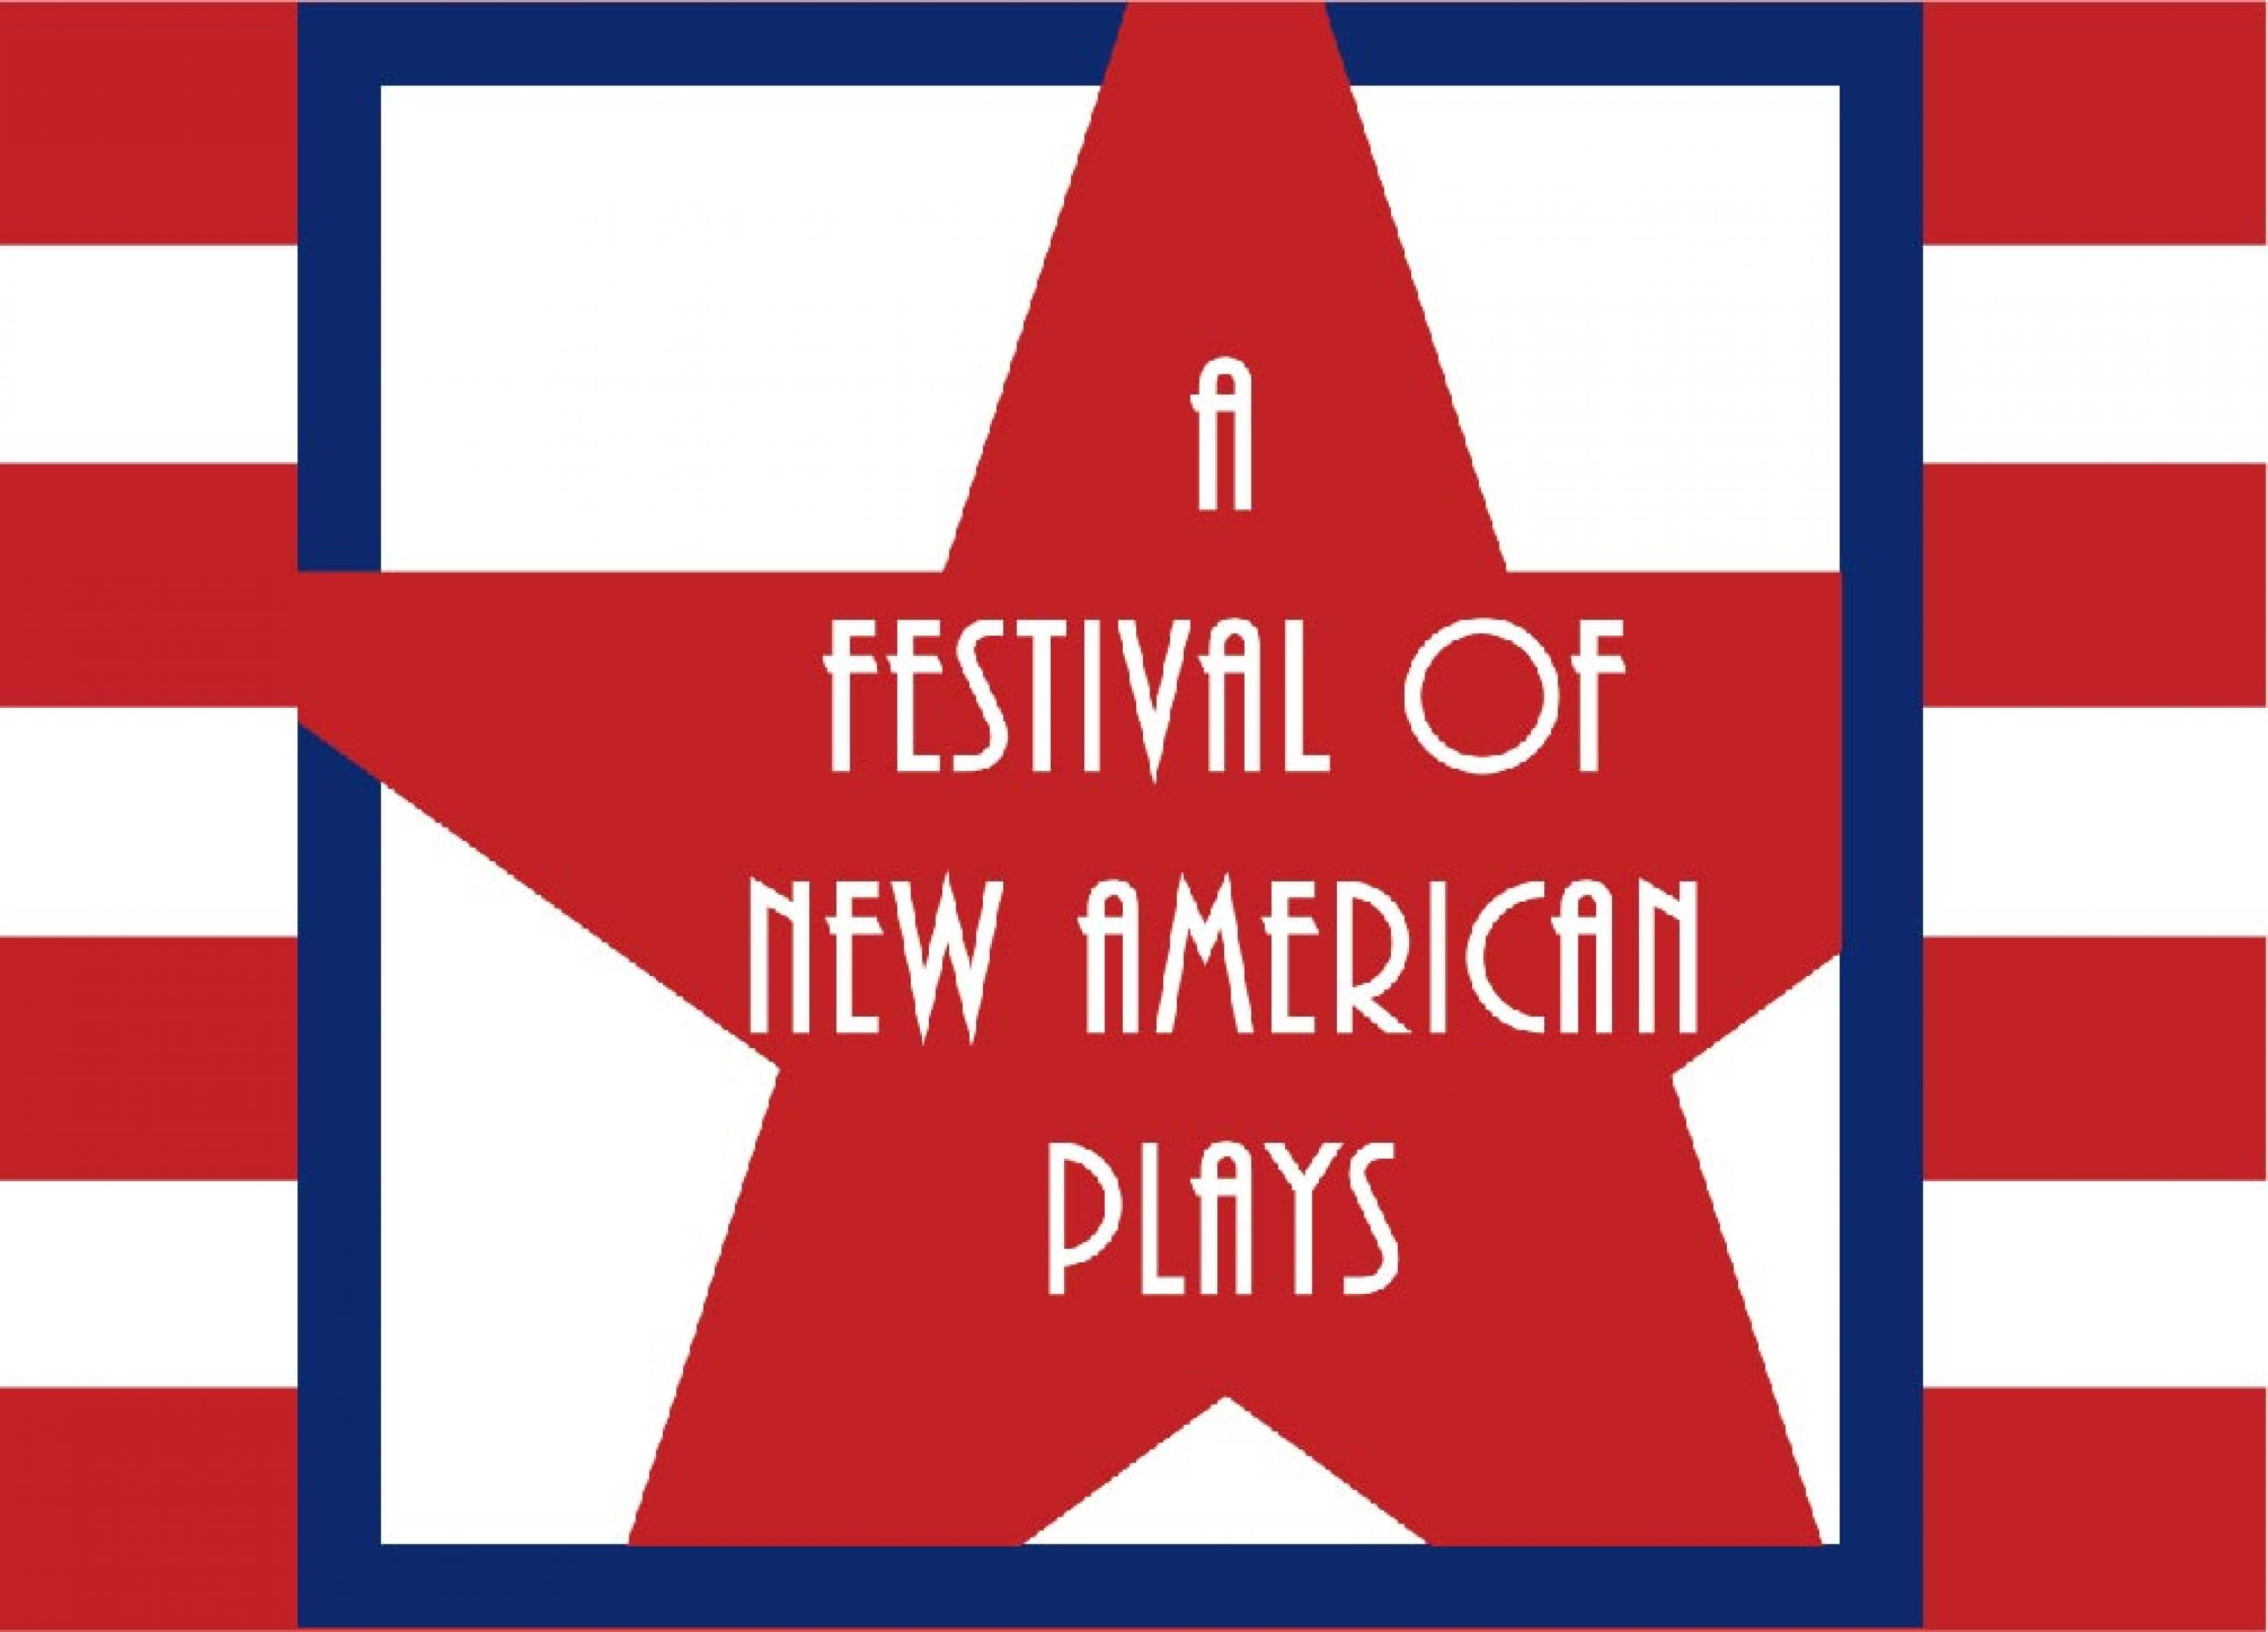 publicity image for A Festival of New American Plays